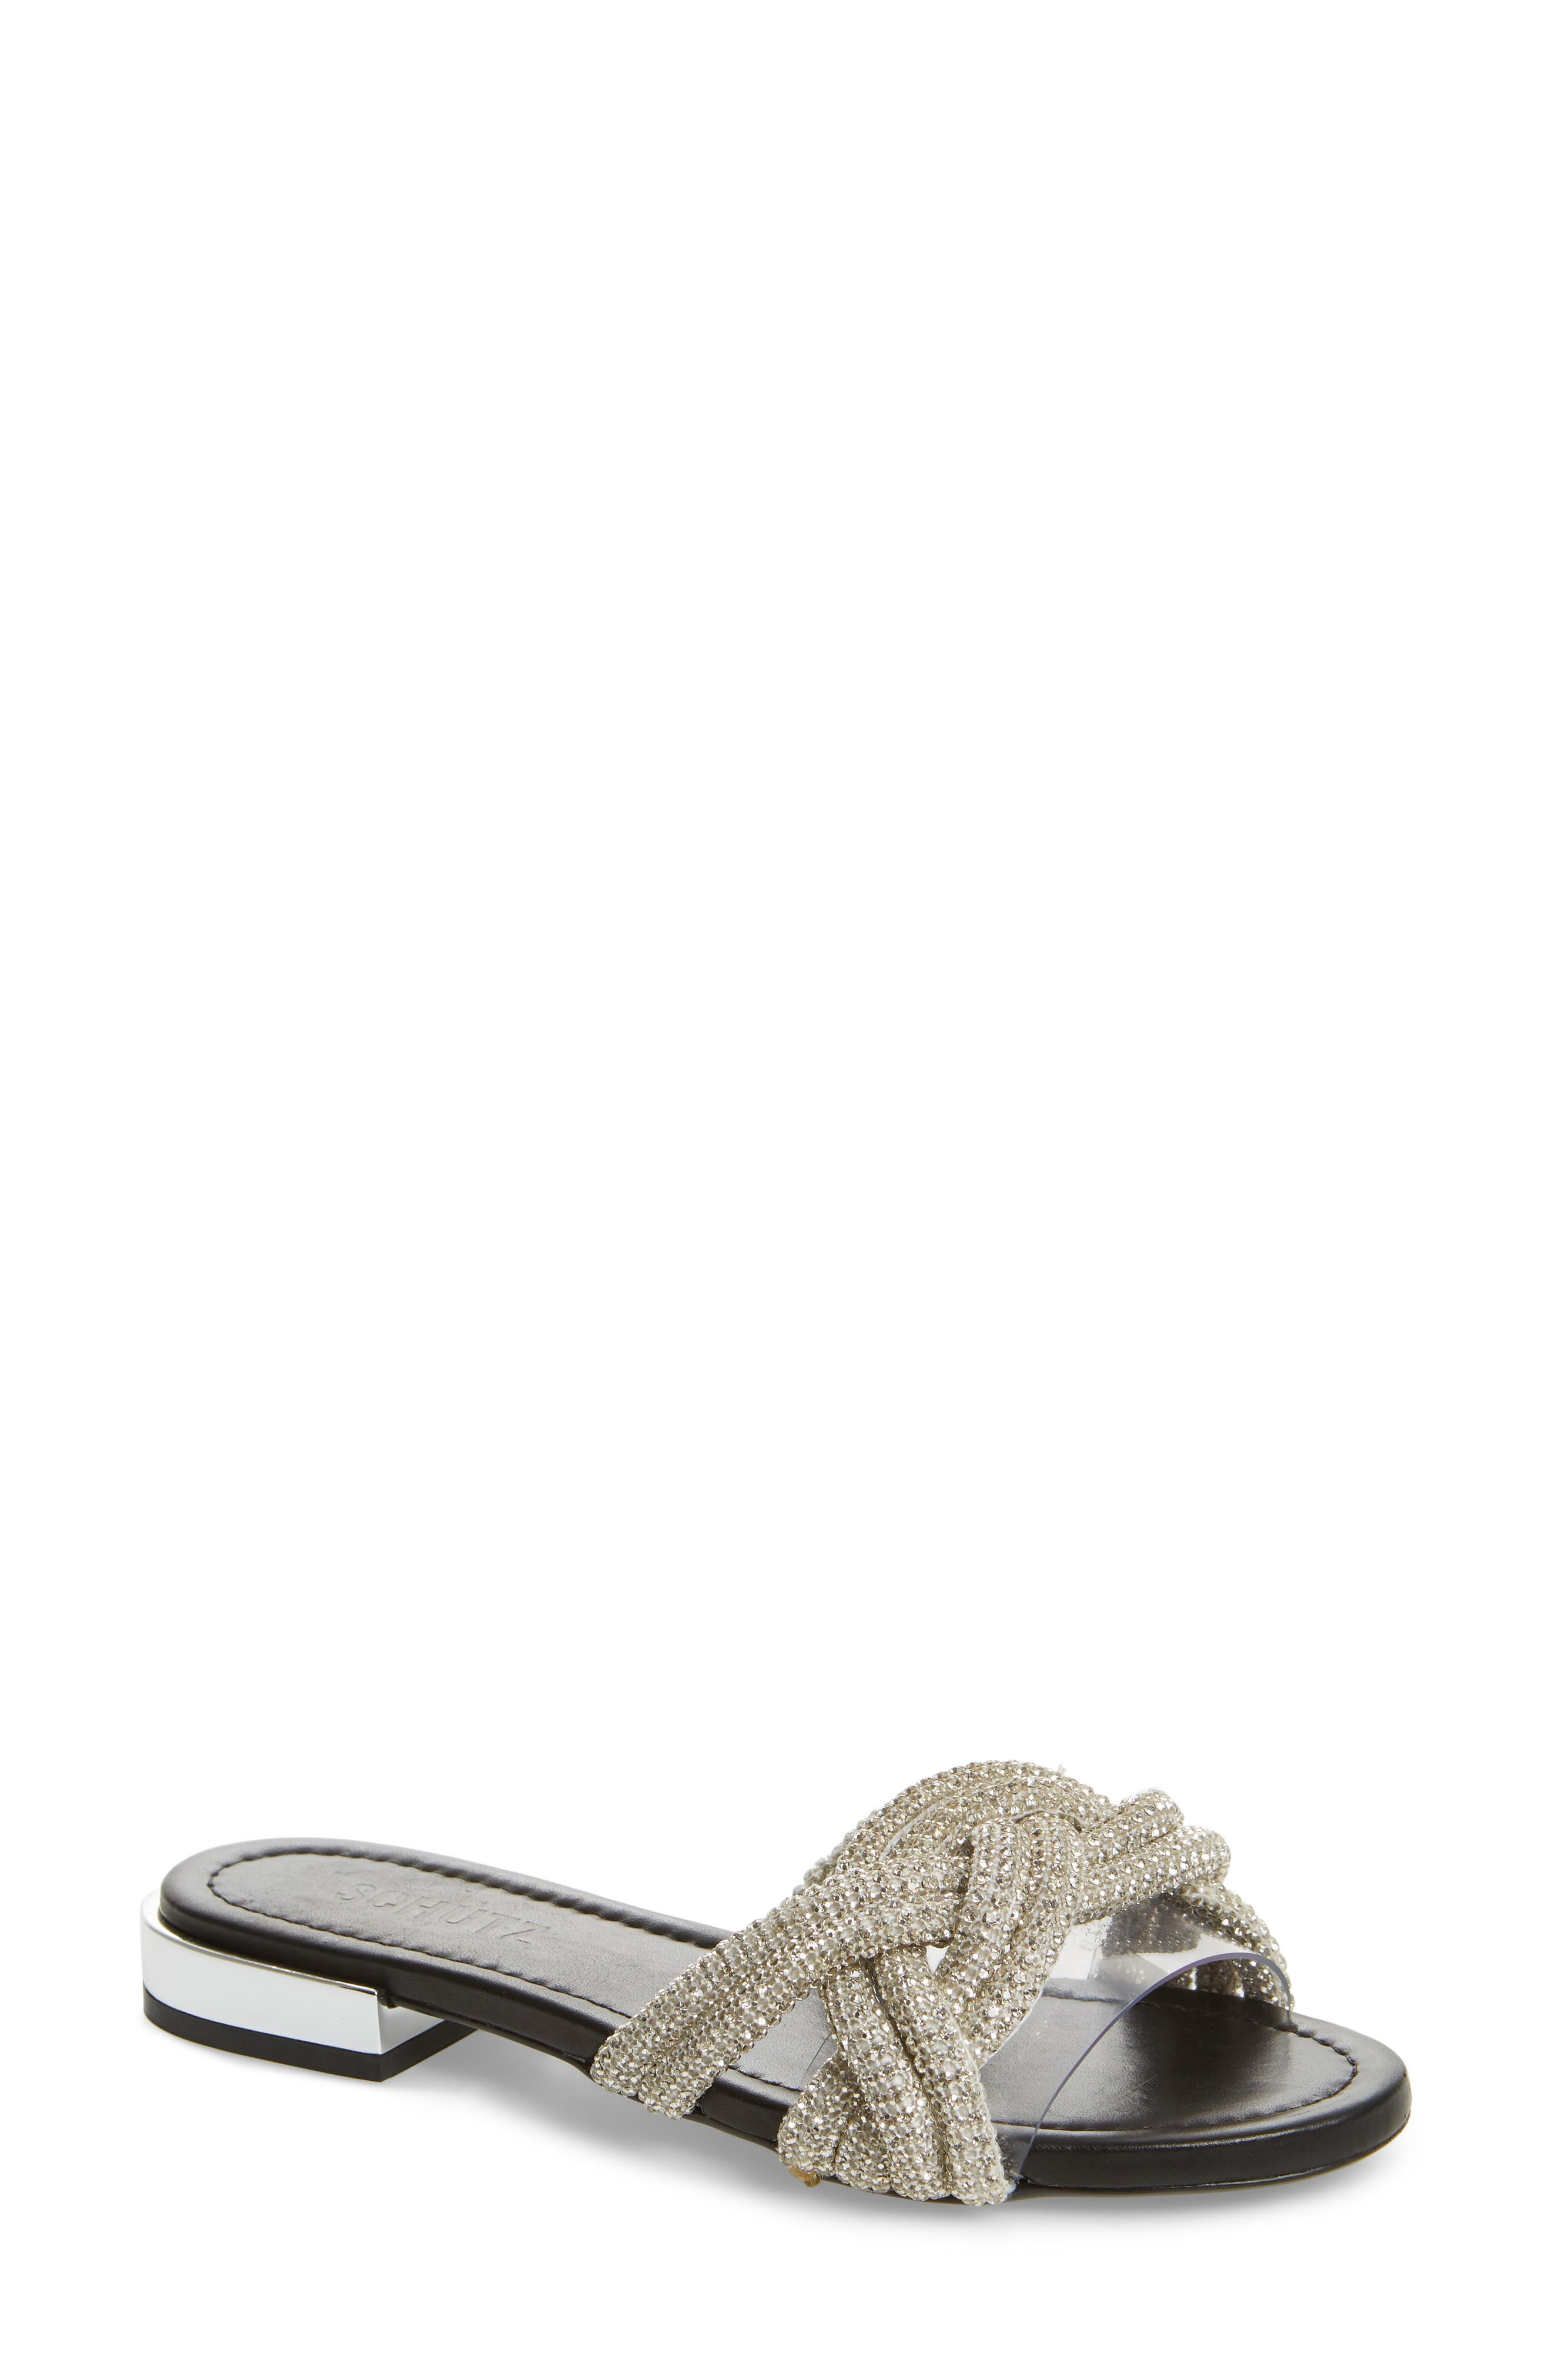 Lindy Braided Slide Sandal,                         Main,                         color, SILVER METALLIC